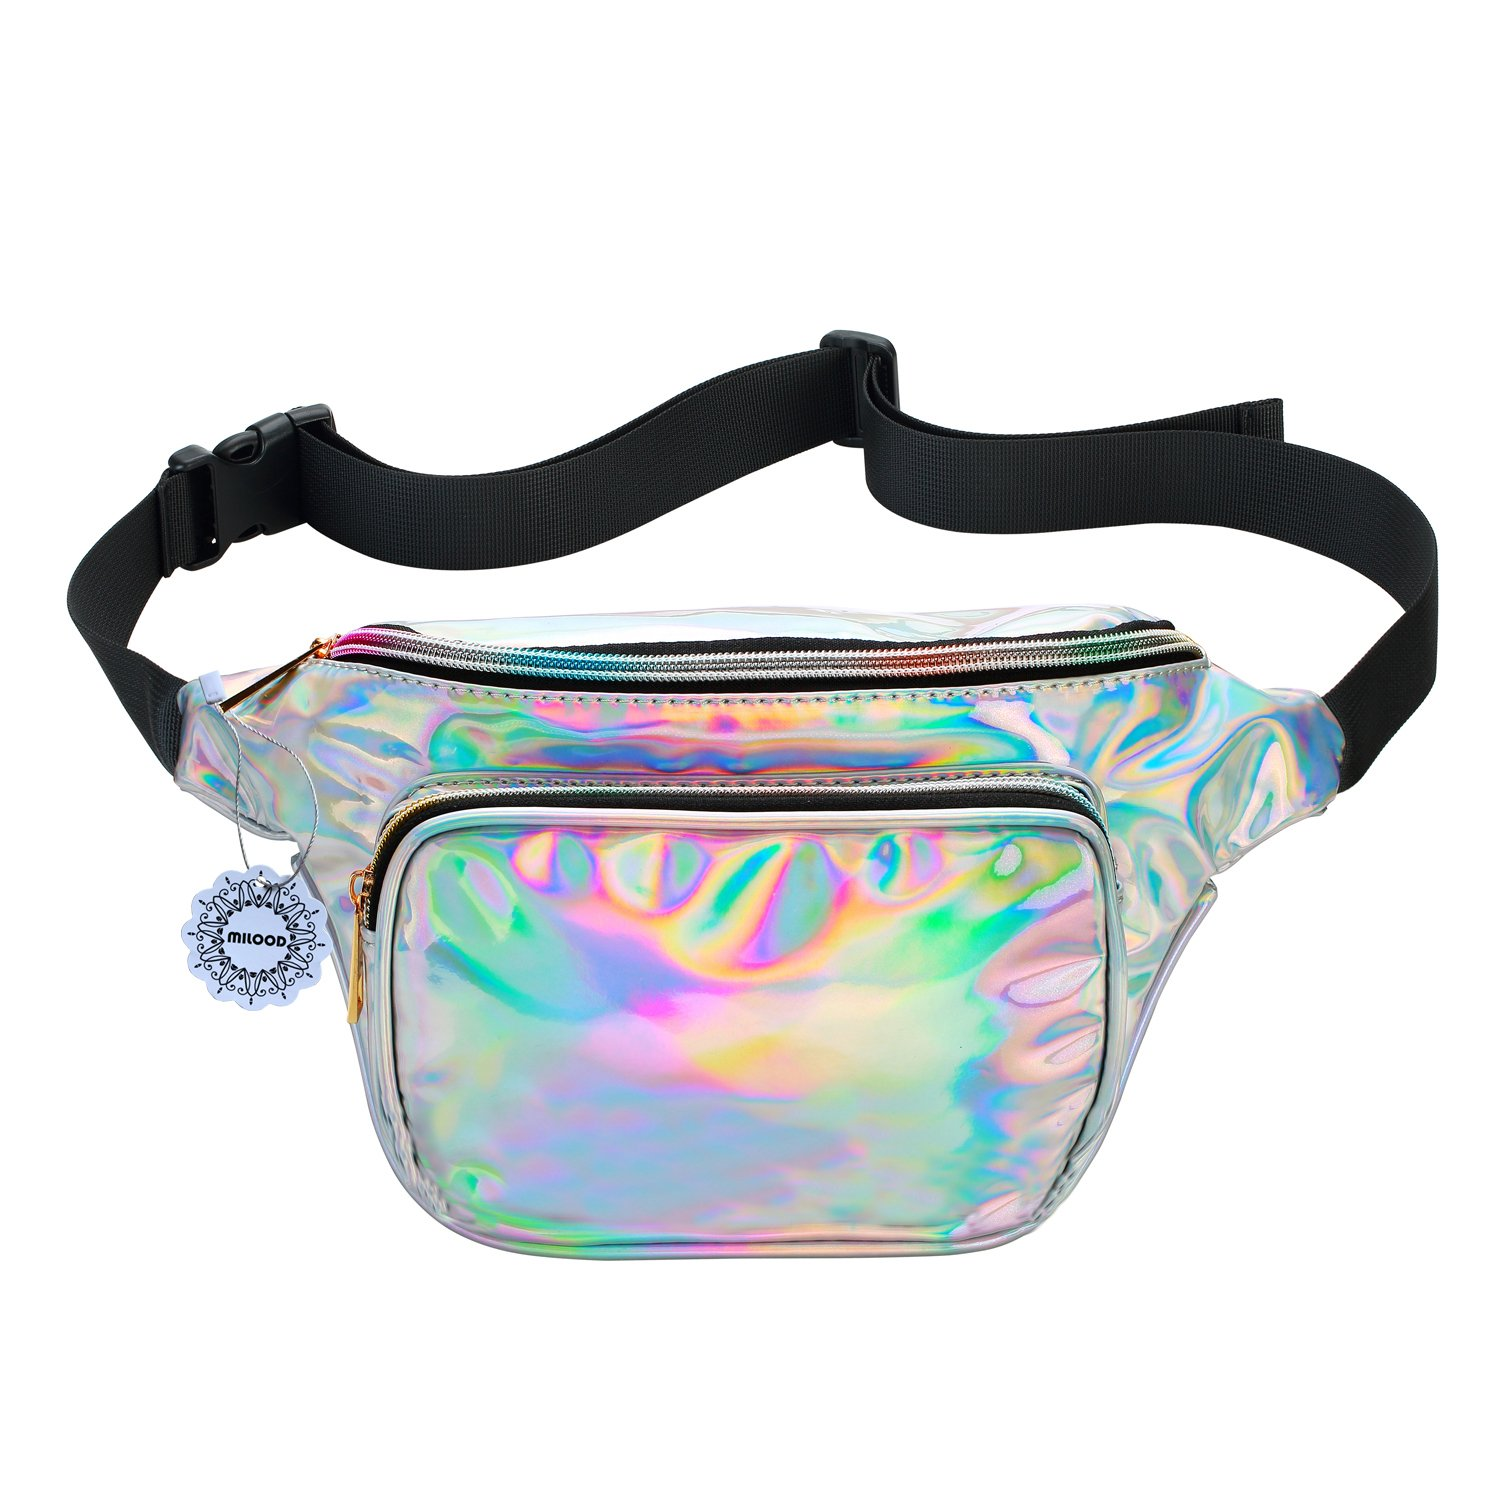 Shiny Neon Fanny Bag for Women Rave Festival Hologram Bum Travel Waist Pack (Silver) by WODODO